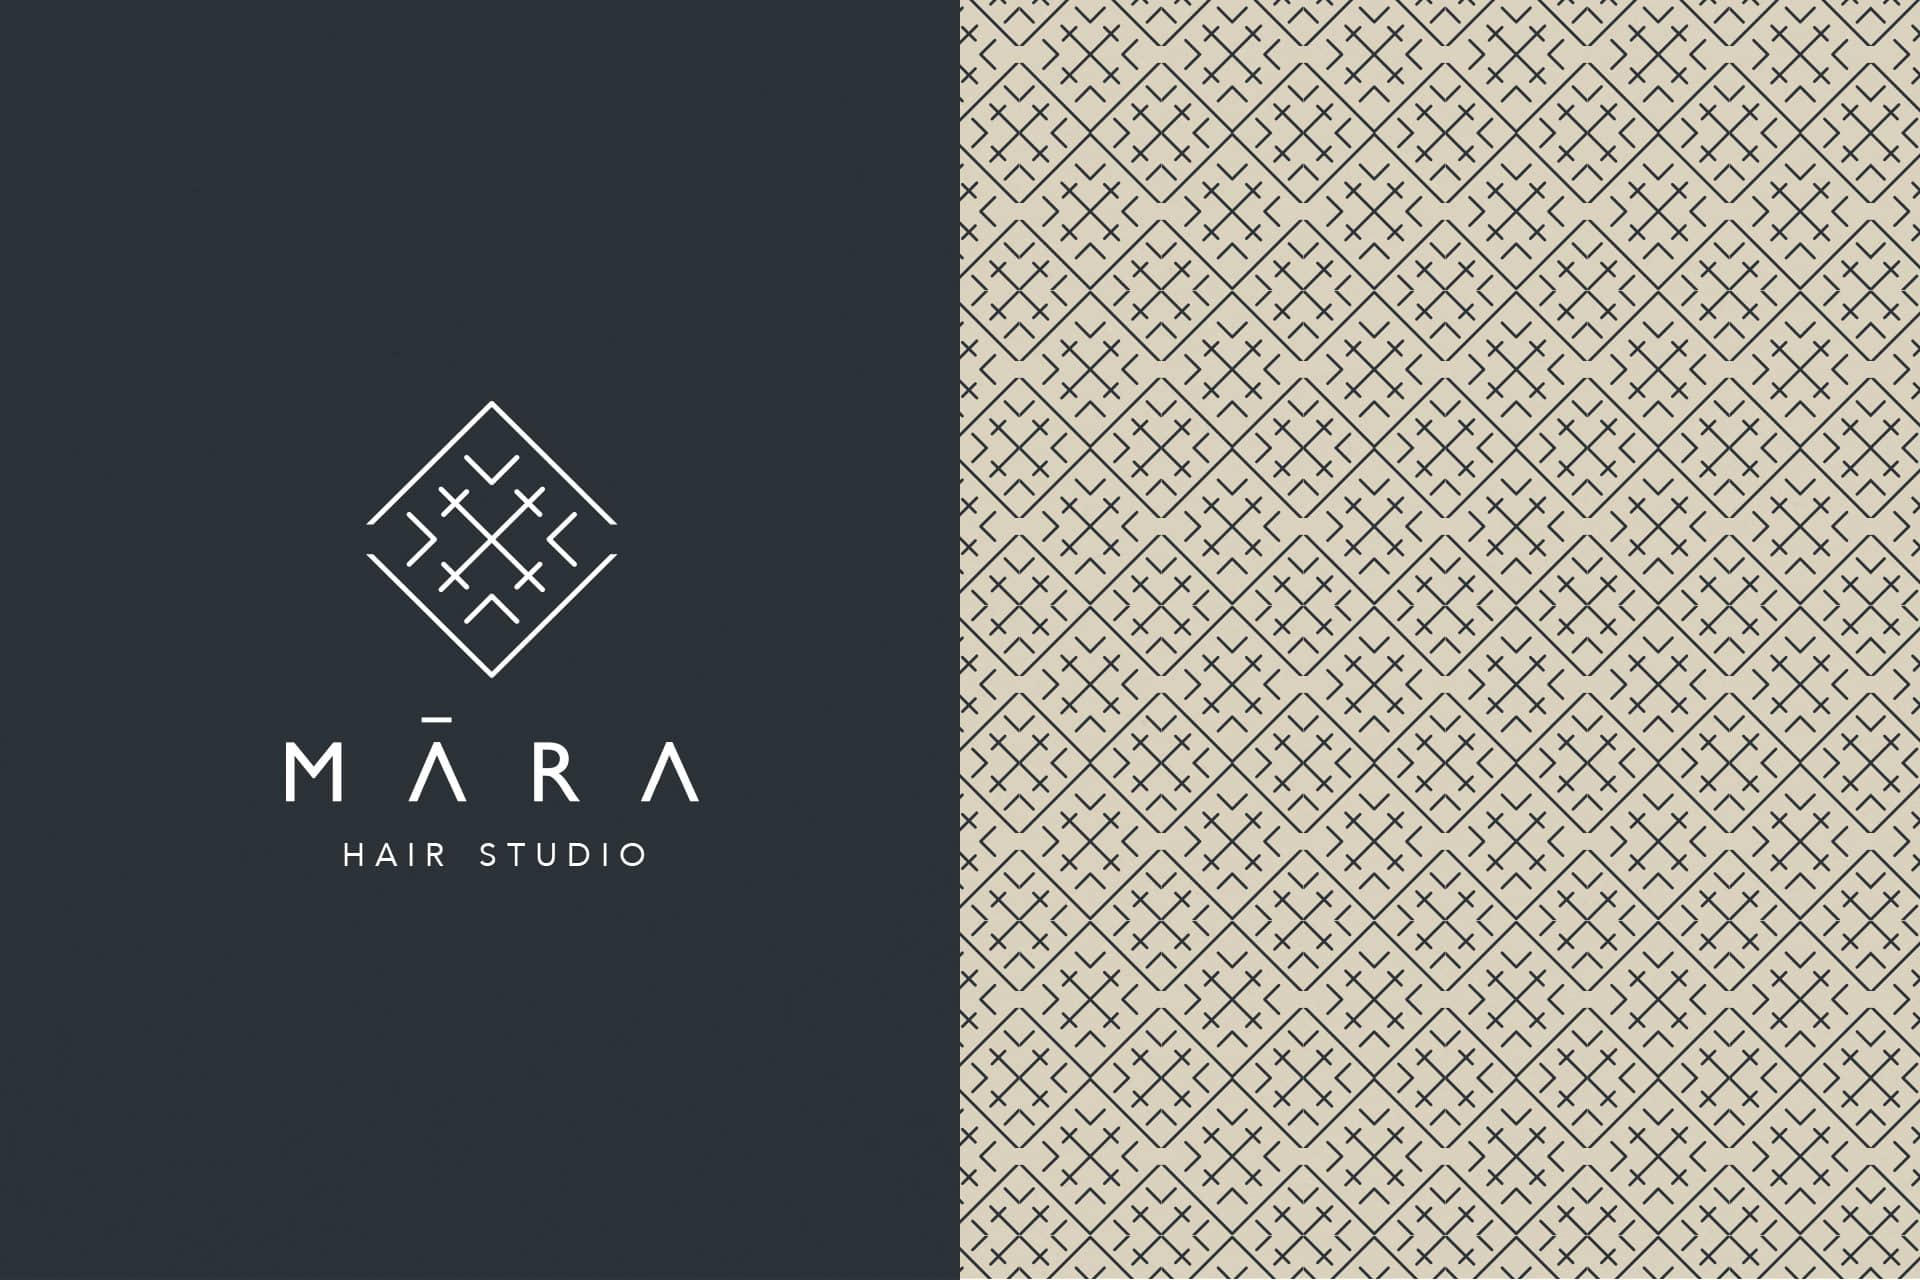 Mara logo and pattern